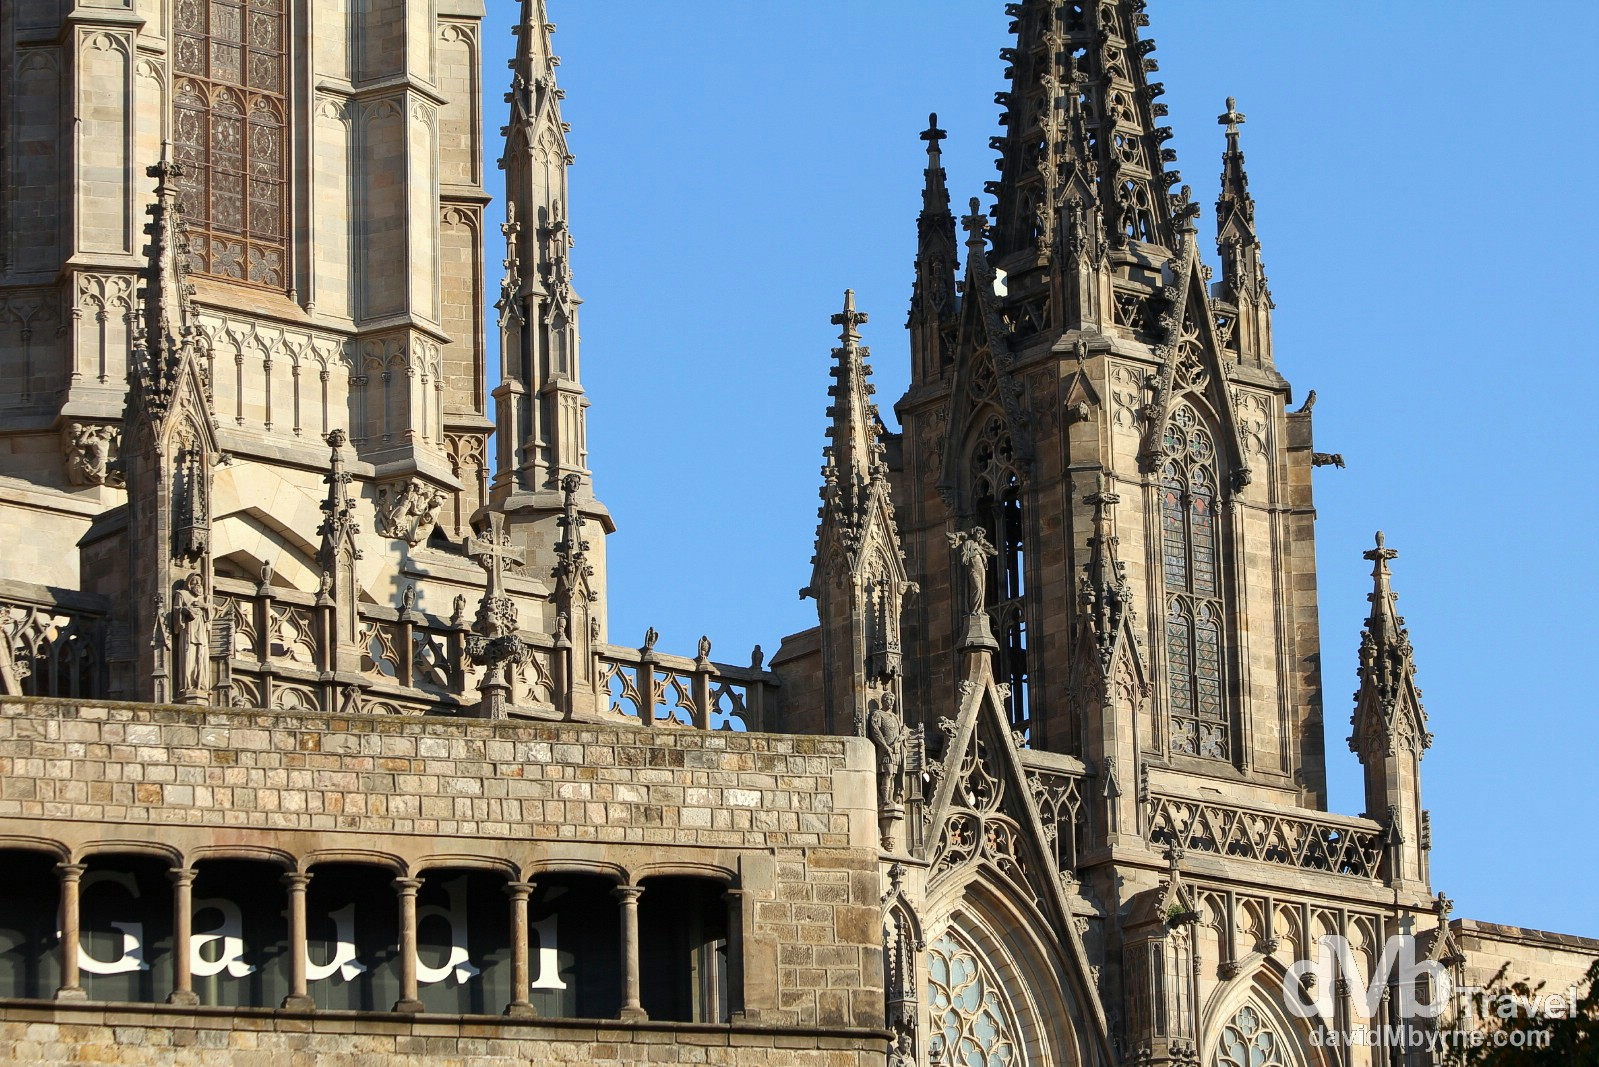 Detail of La Catedral in Barri Gotic, Barcelona, Spain. June 16th, 2014.